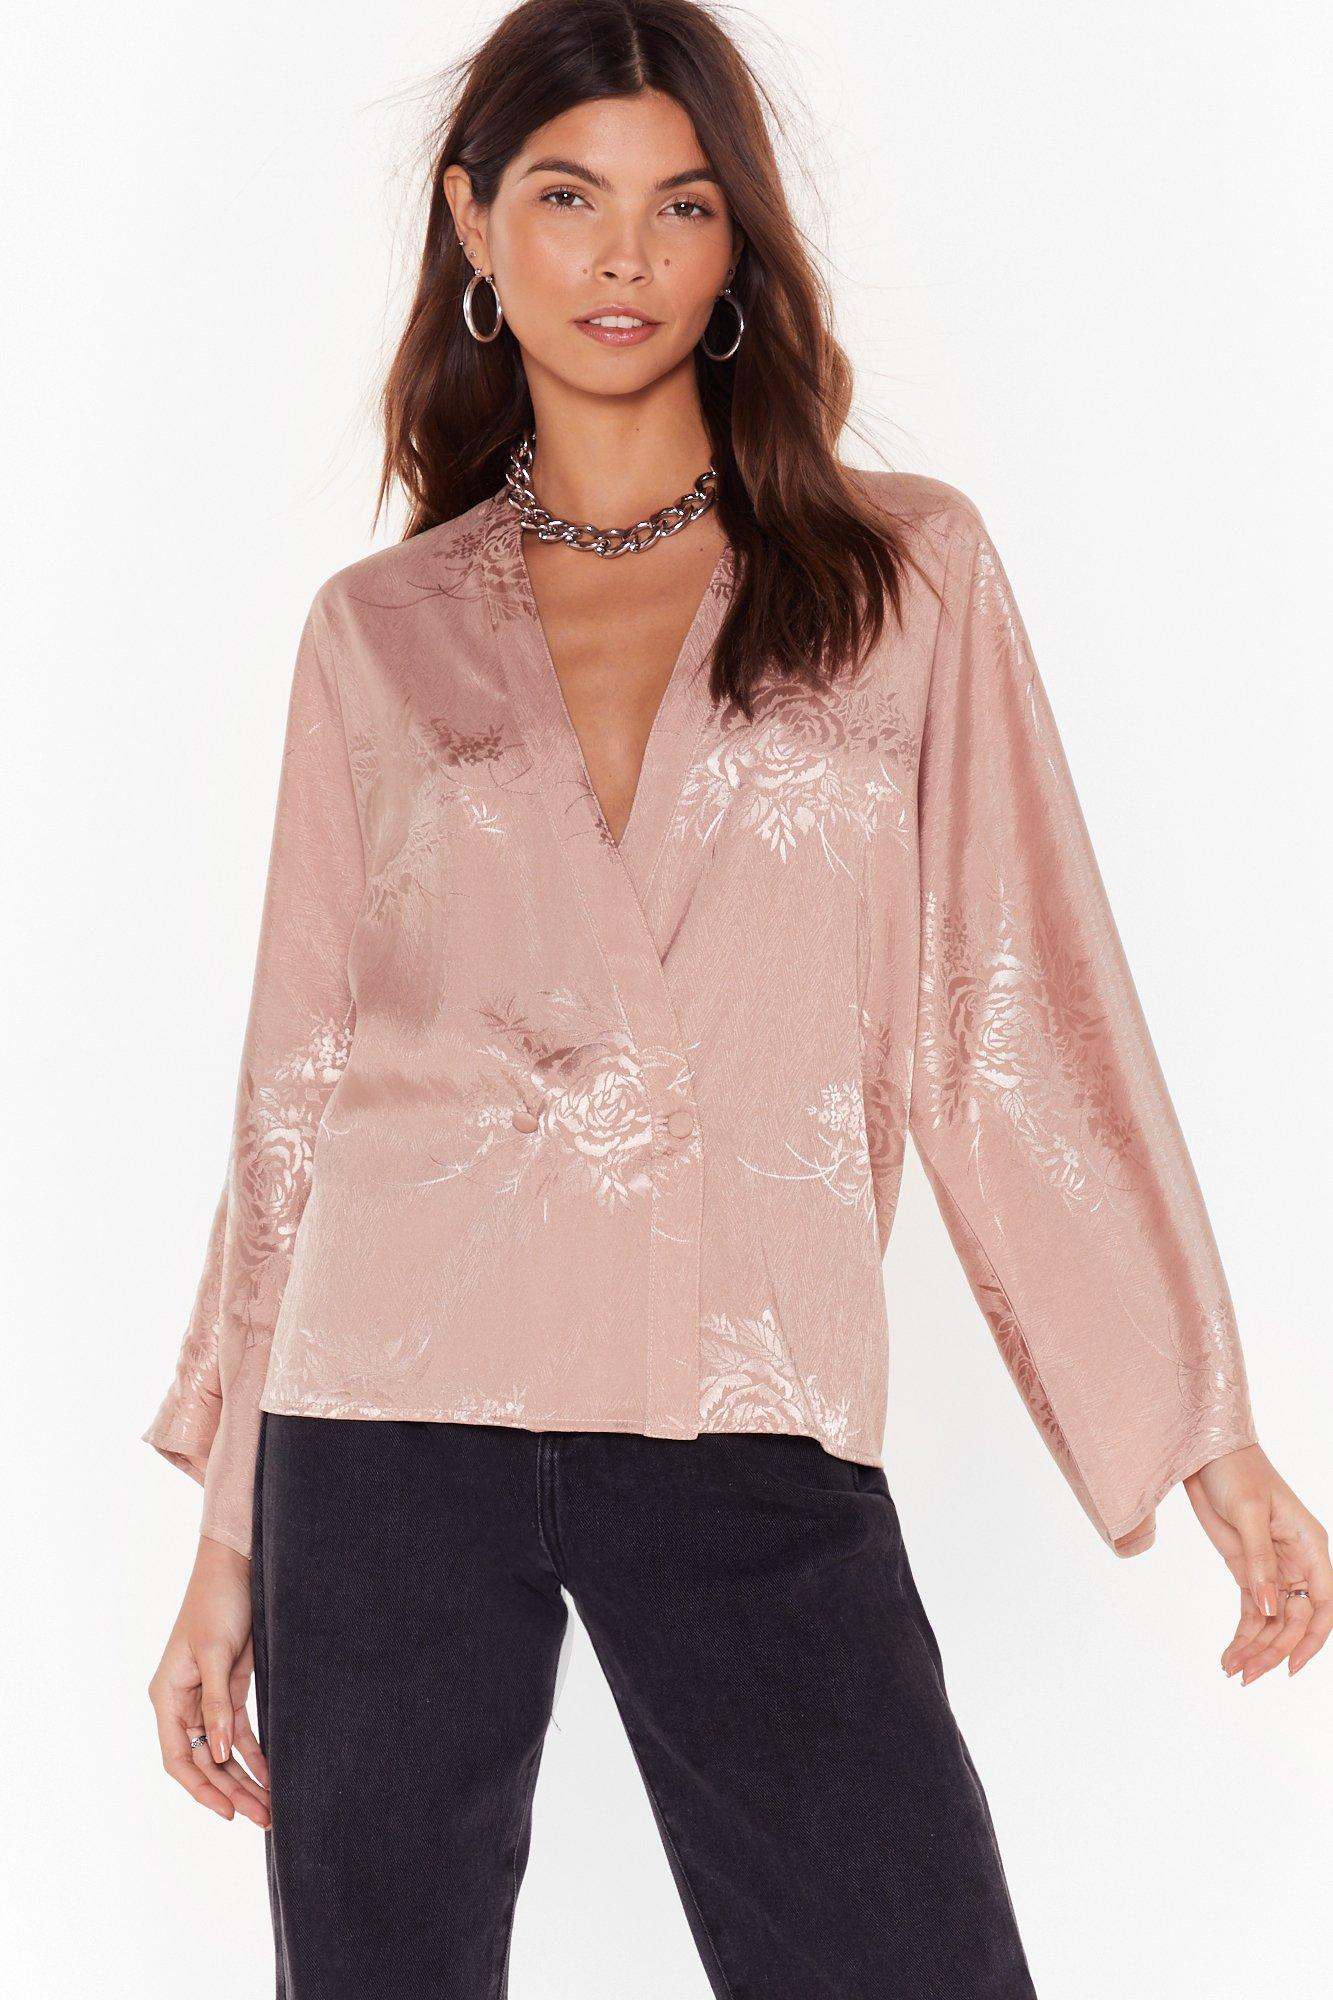 Image of Grow Hey Good Looking Satin Jacquard Blouse